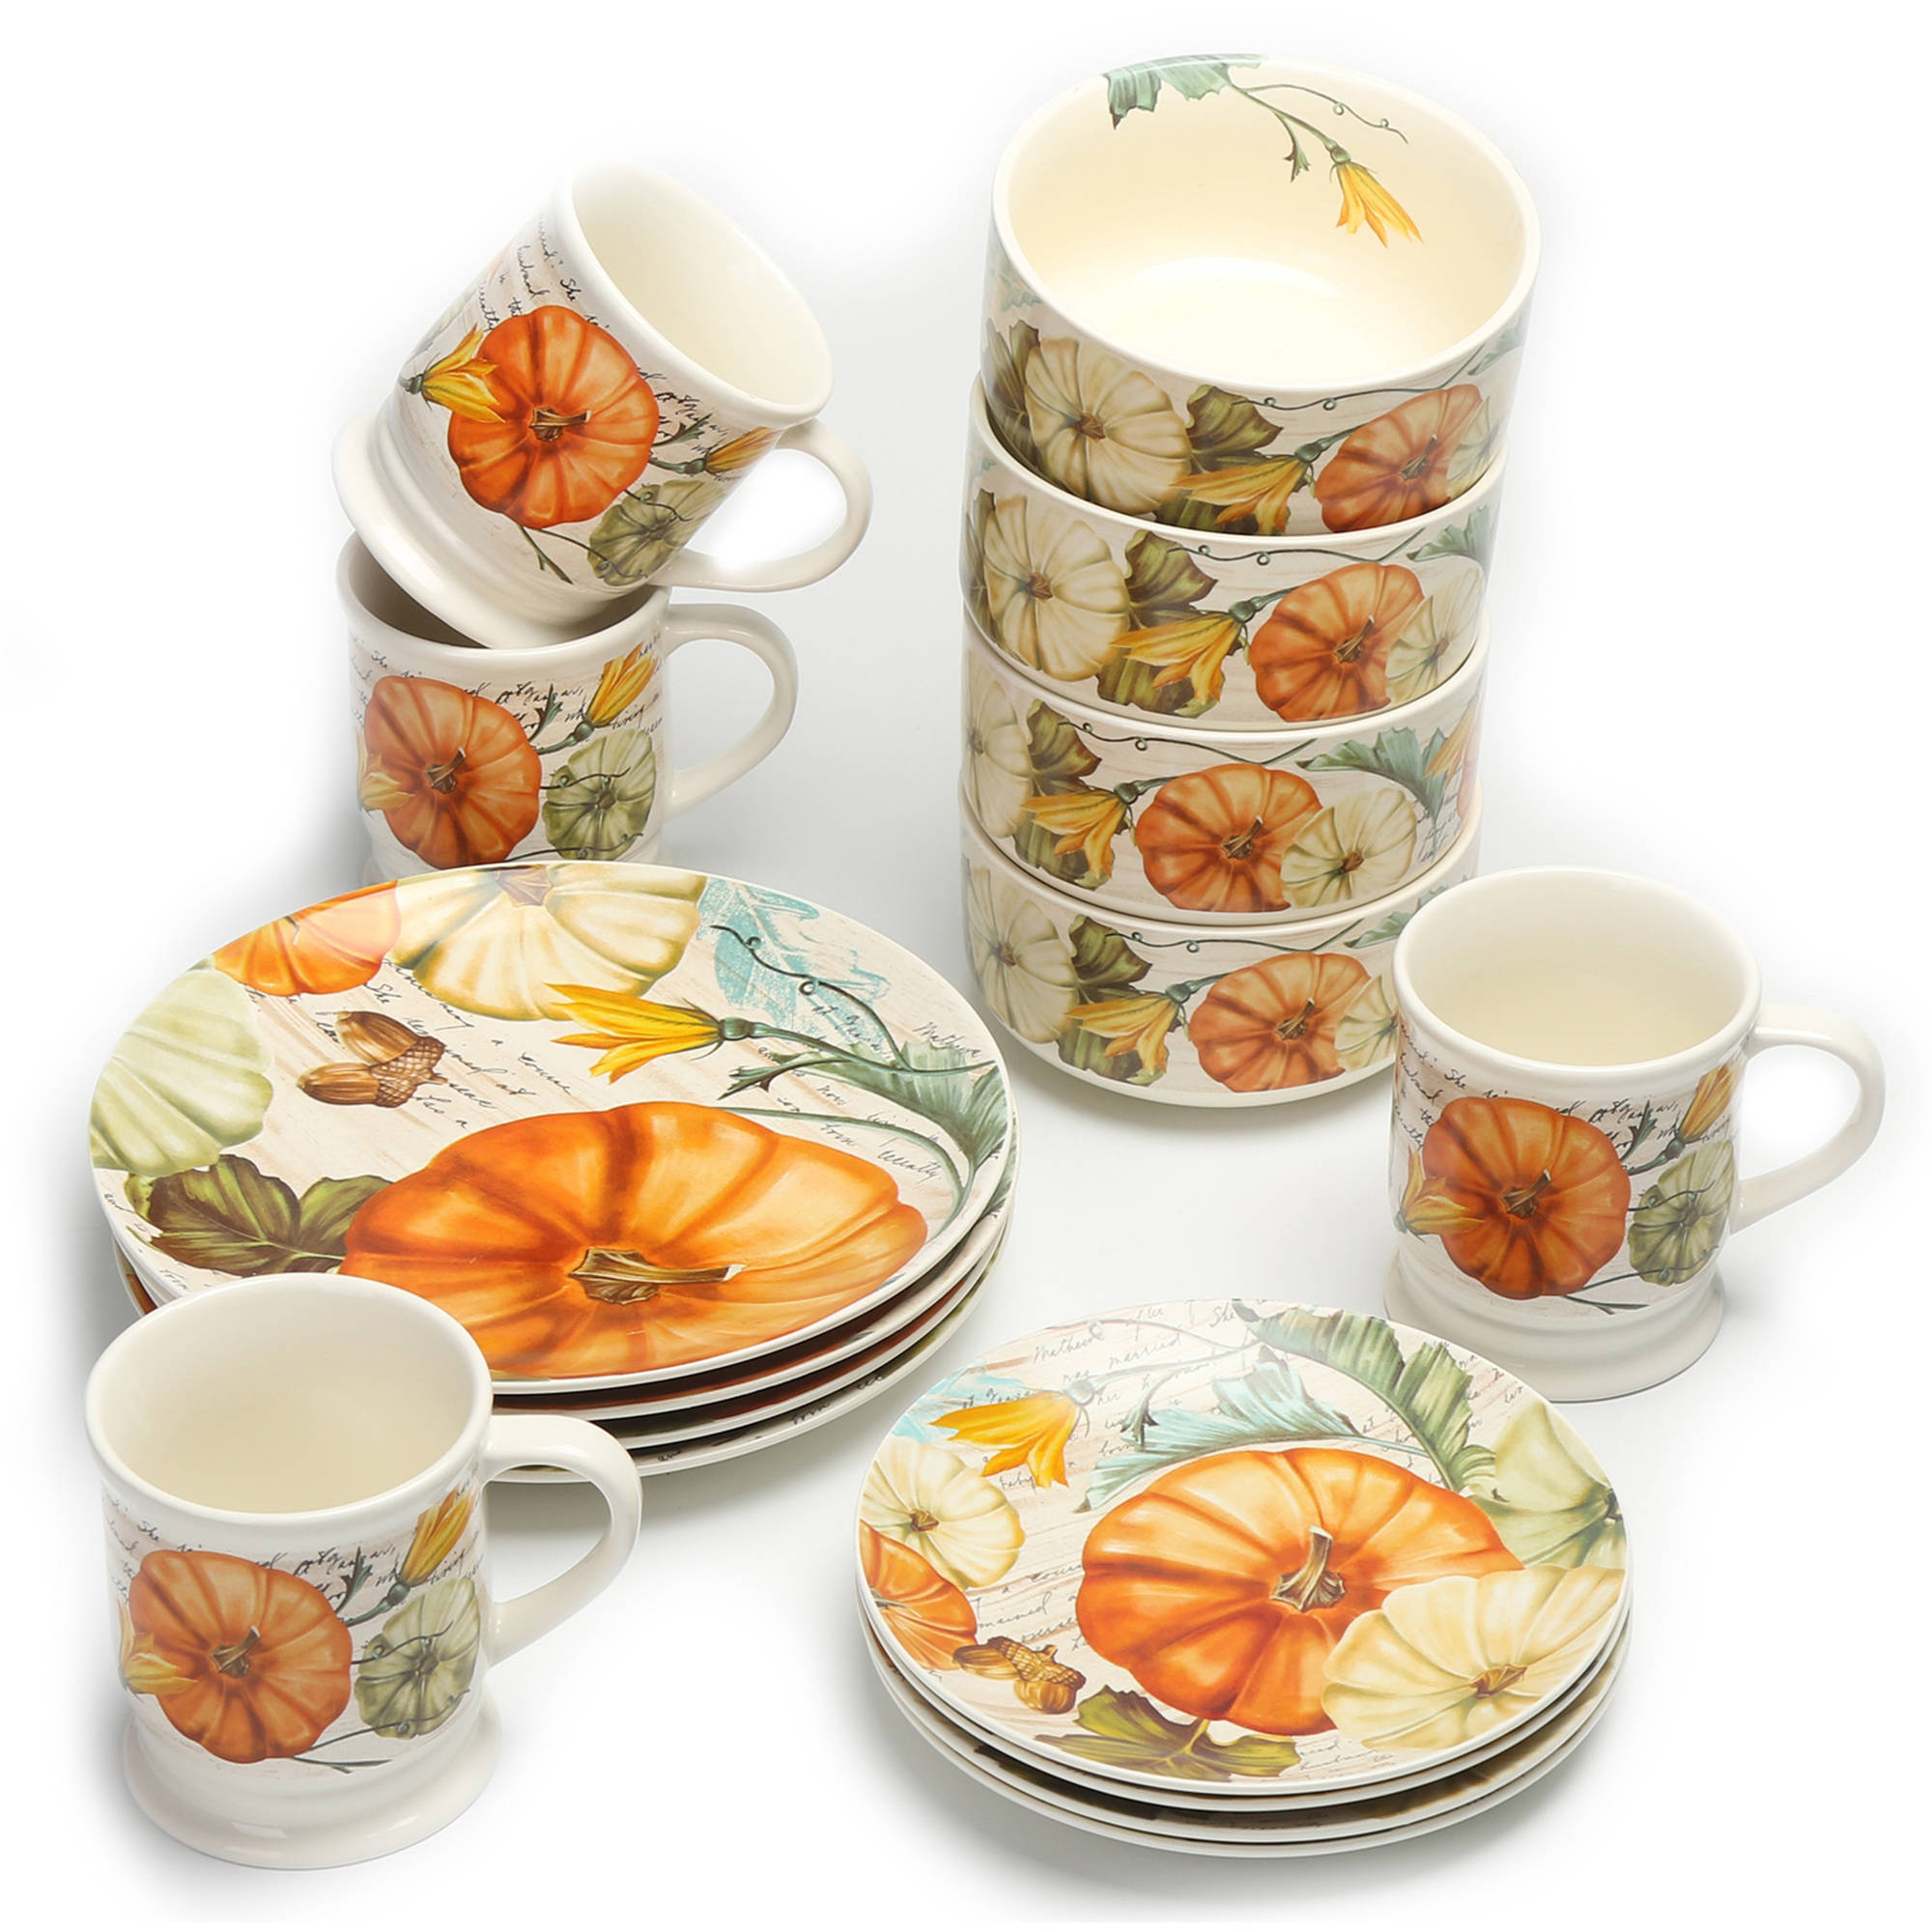 Mainstays 16-Piece Festive Fall Pumpkins Dinnerware Set  sc 1 st  Walmart & Mainstays 16-Piece Festive Fall Pumpkins Dinnerware Set - Walmart.com